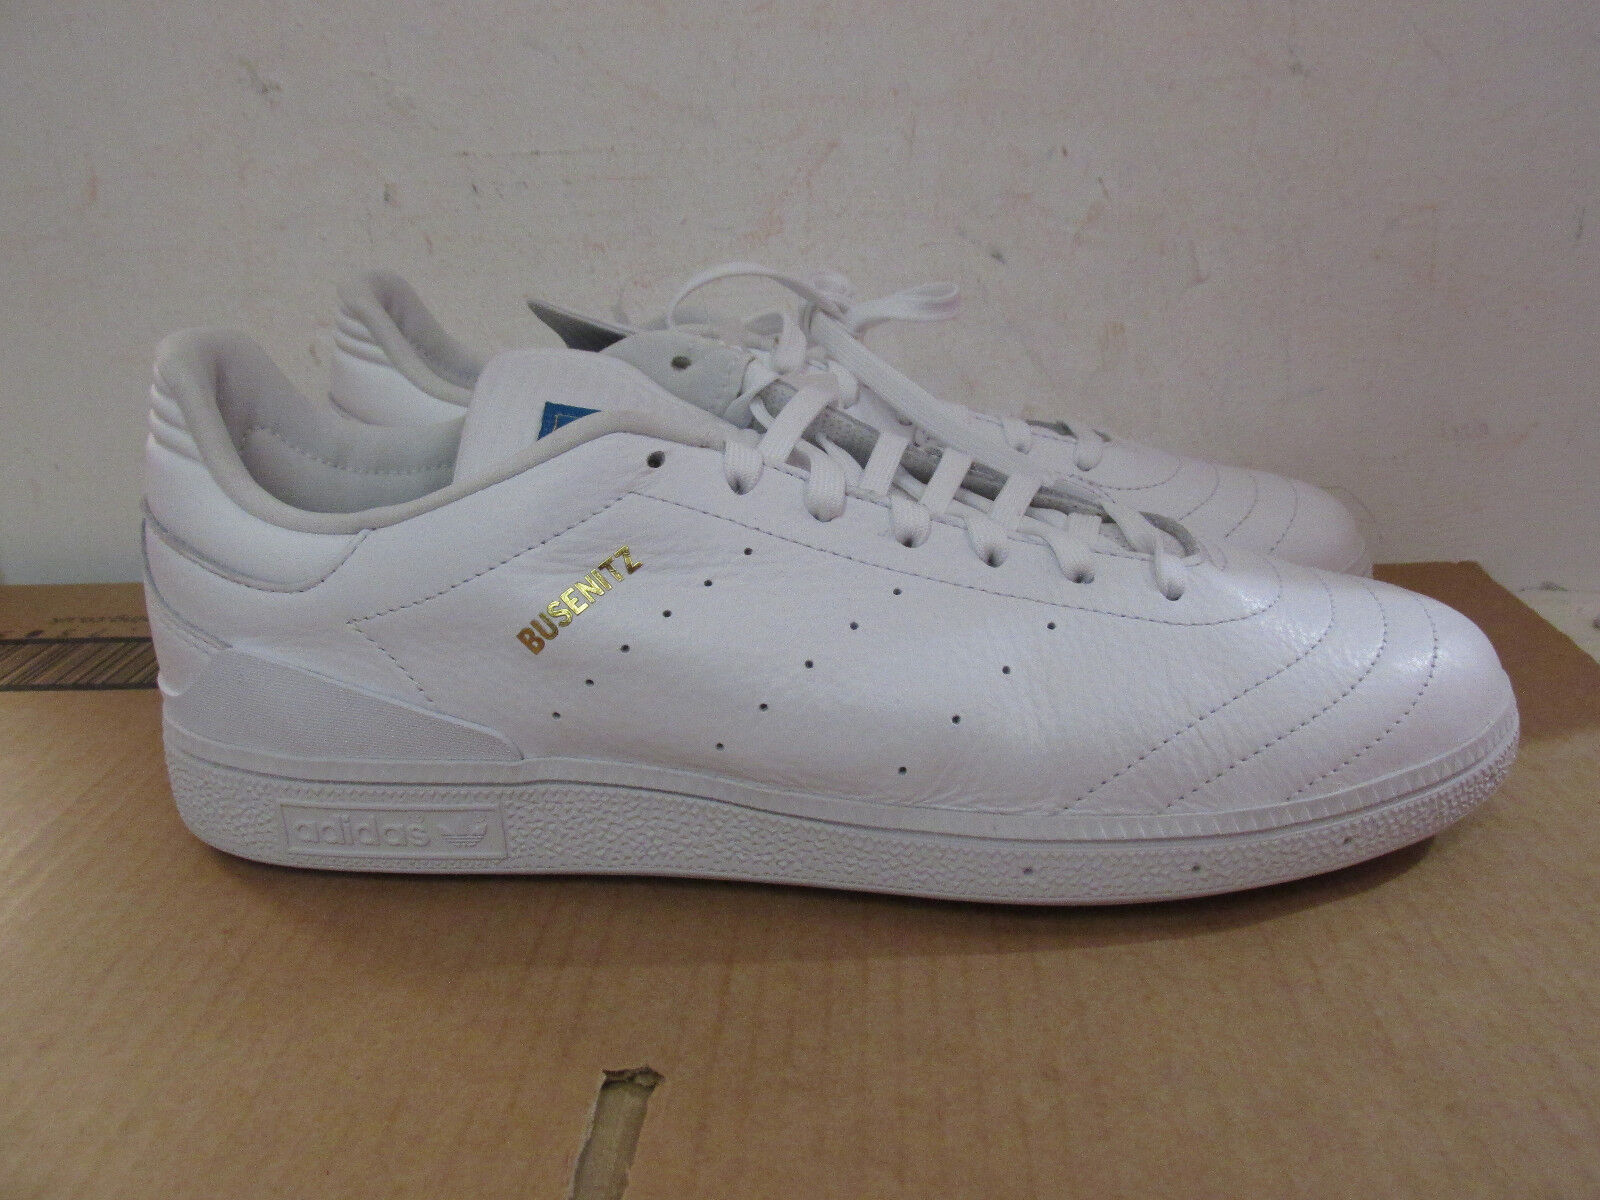 Adidas Busenitz Remix pro range BY4099 mens trainers sneakers SAMPLE